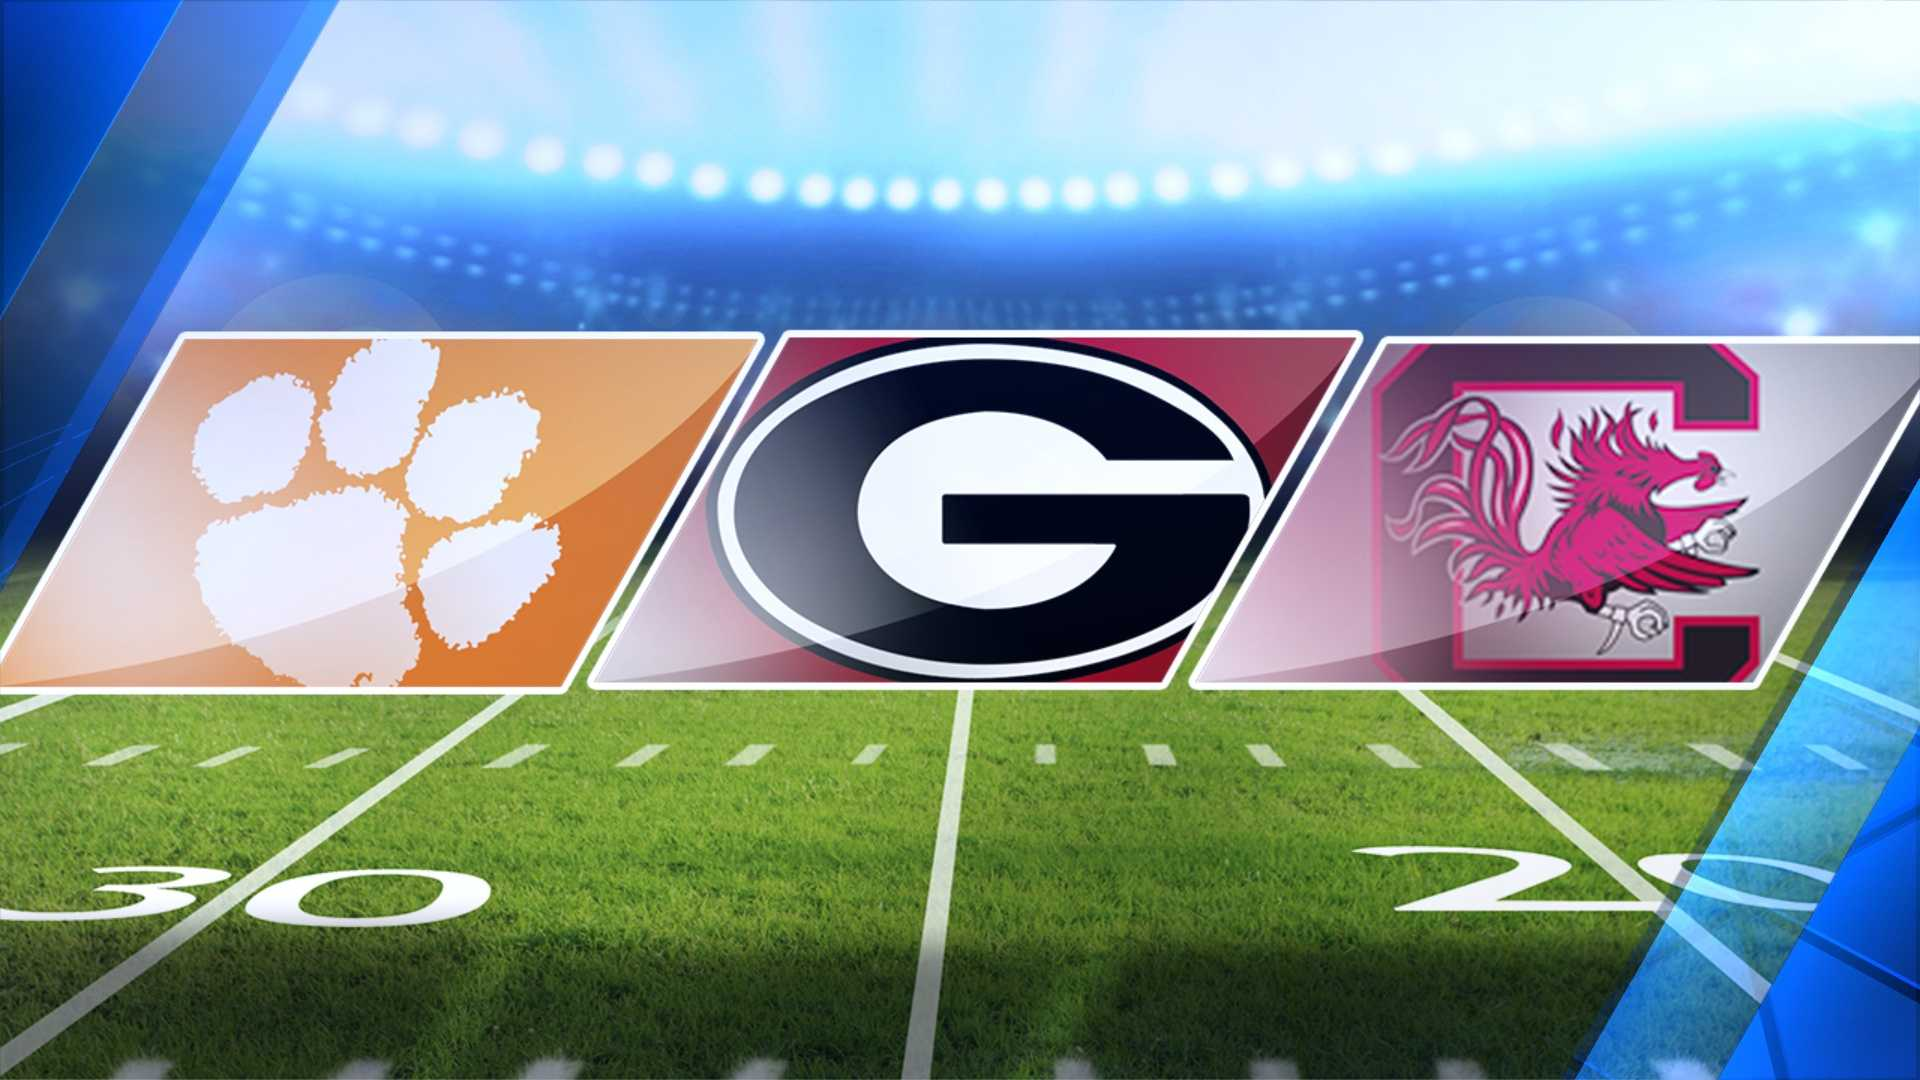 Clemson, Georgia and South Carolina together football